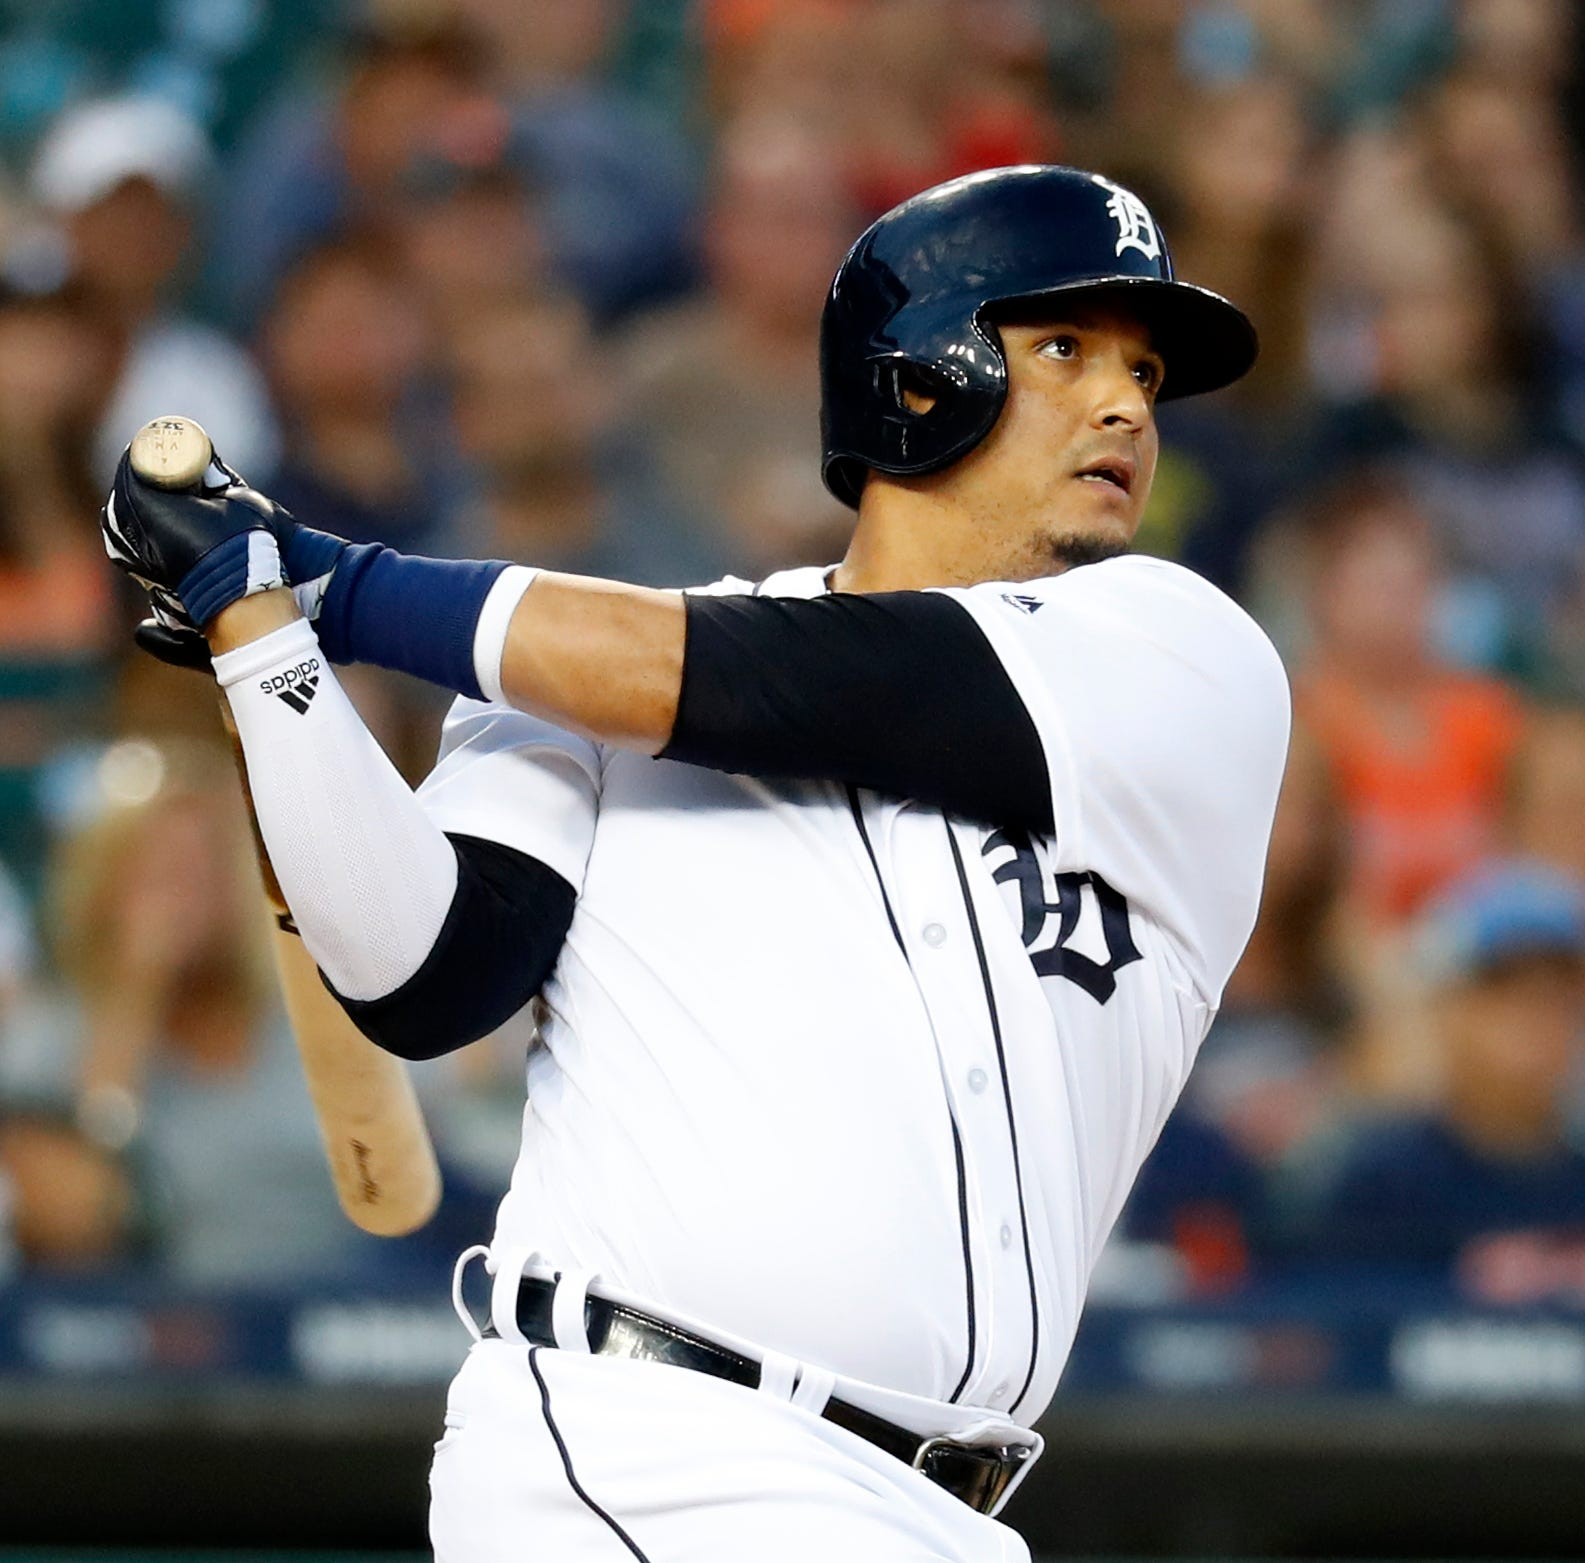 Detroit Tigers' Victor Martinez likely to retire after 2018 season